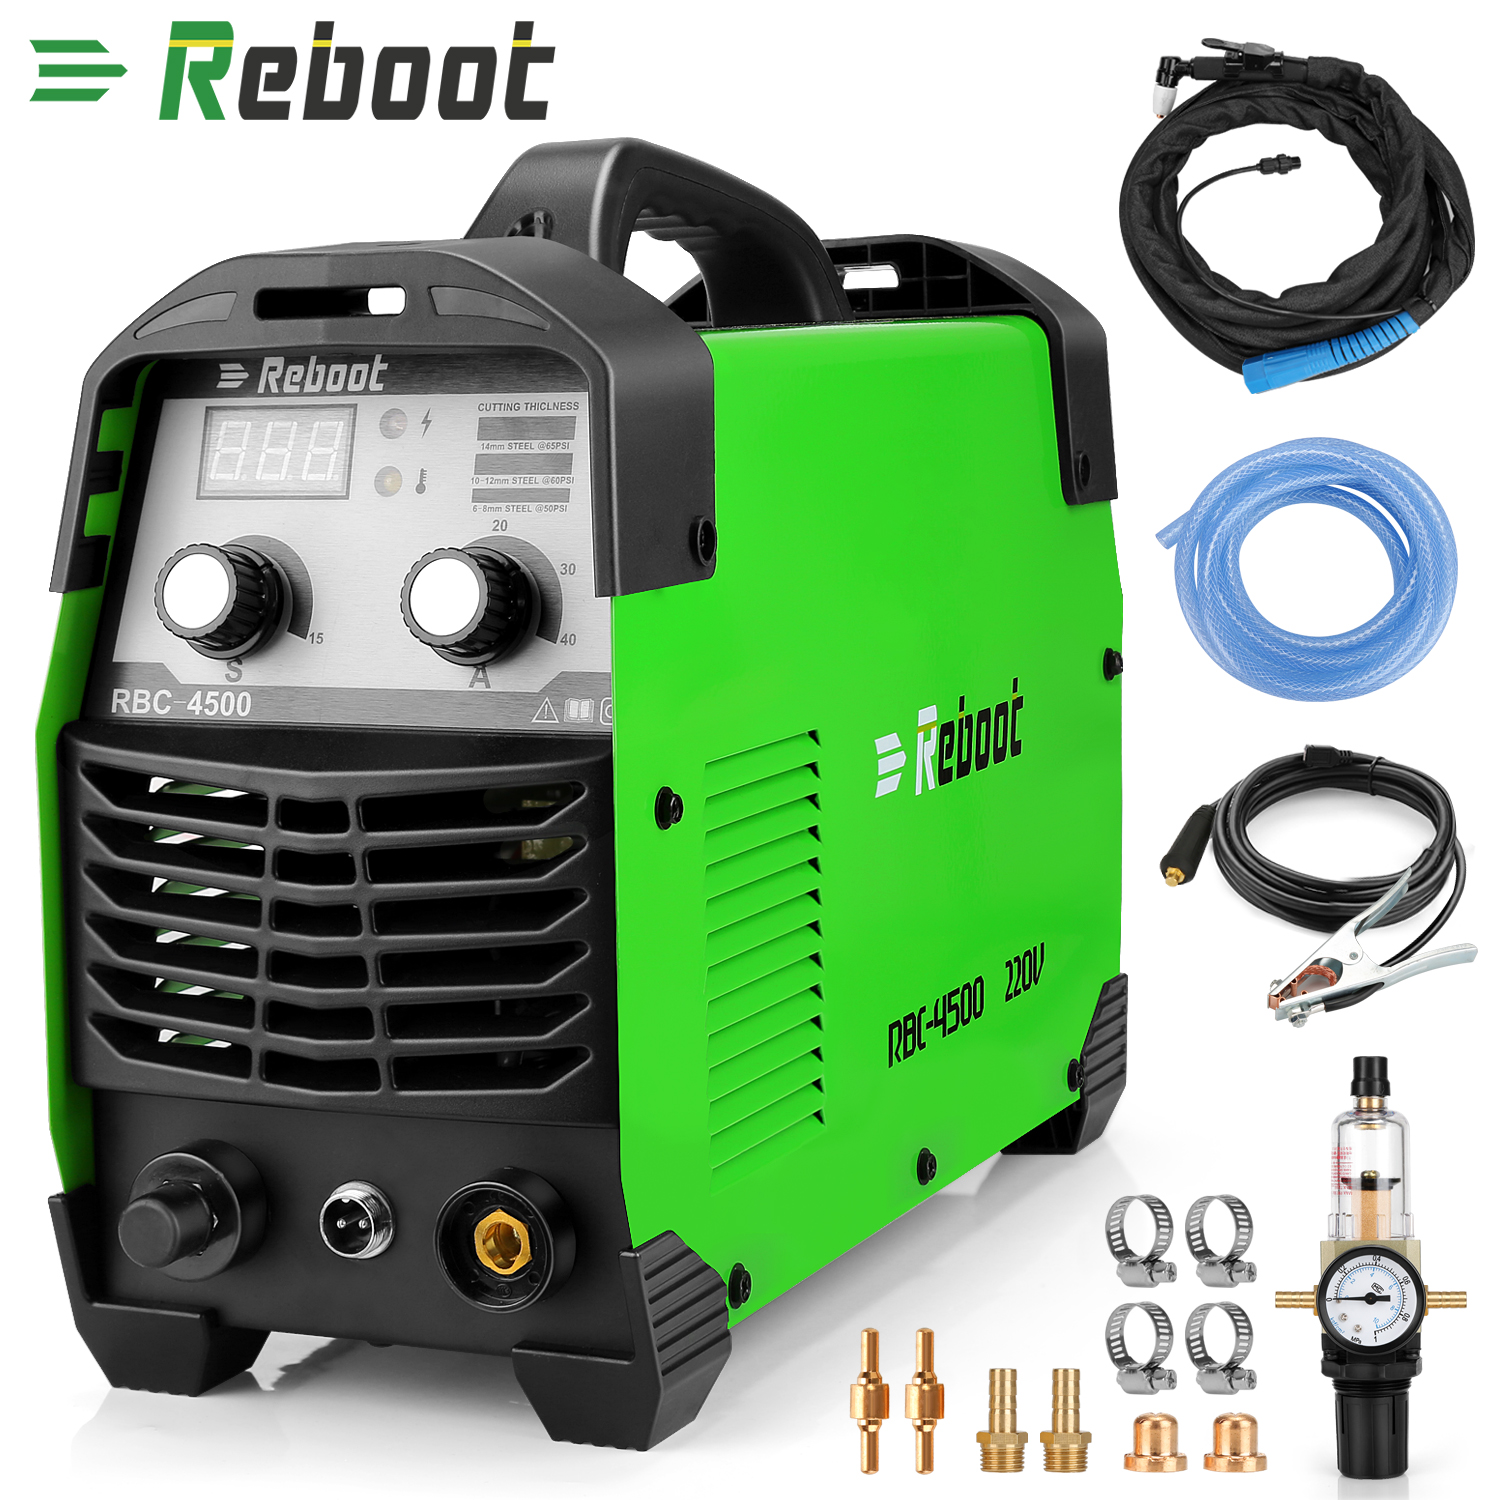 Reboot Plasma Cutter 45Amps AC220V Voltage Compact Metal Cutter AC 1/2